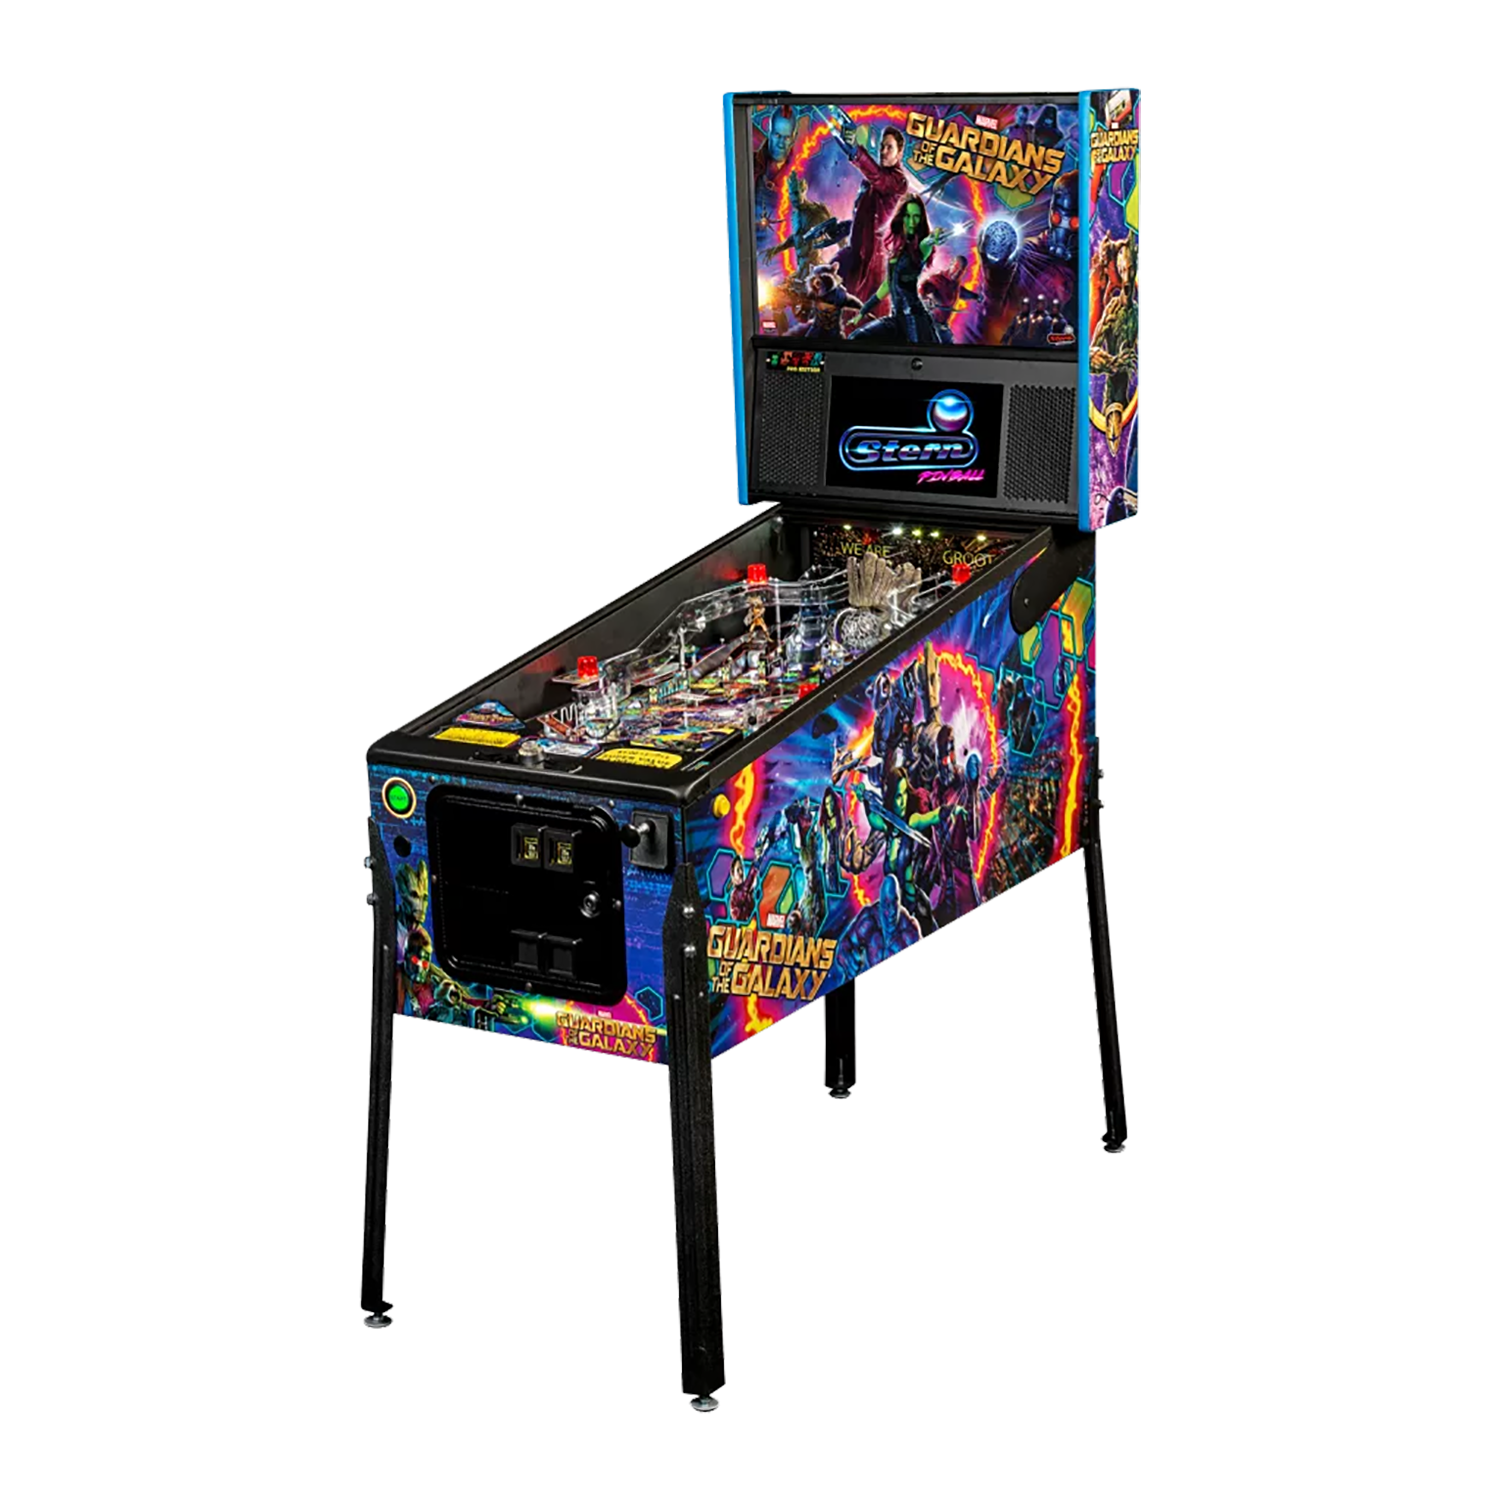 Guardians of the Galaxy Pinball Pro